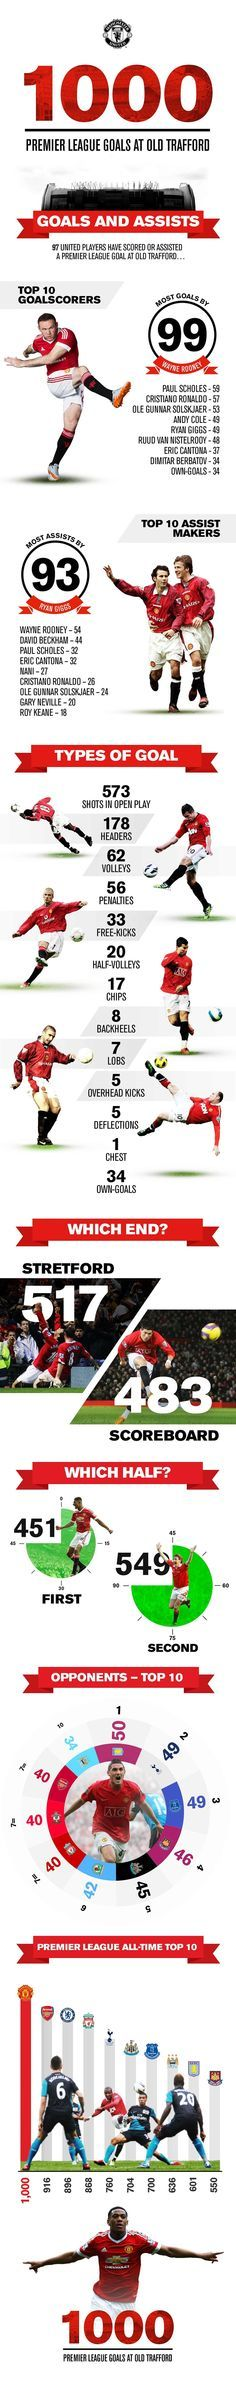 1,000 Premier League goals at Old Trafford infographic - Official Manchester United Website